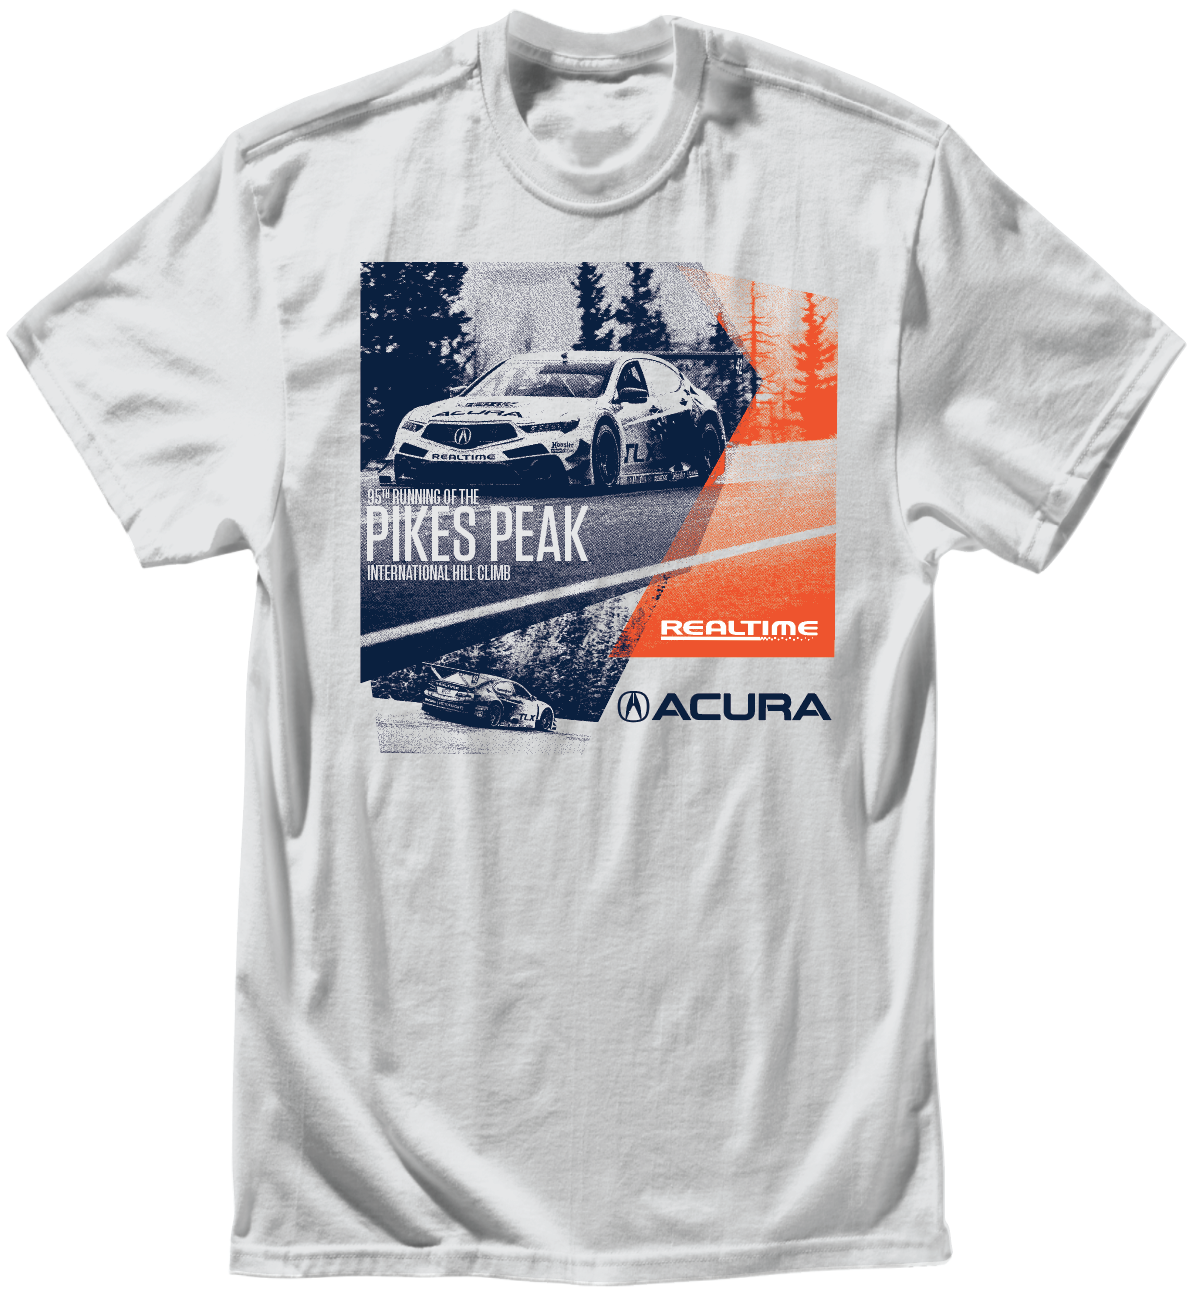 Store RealTime Racing - Acura shirt